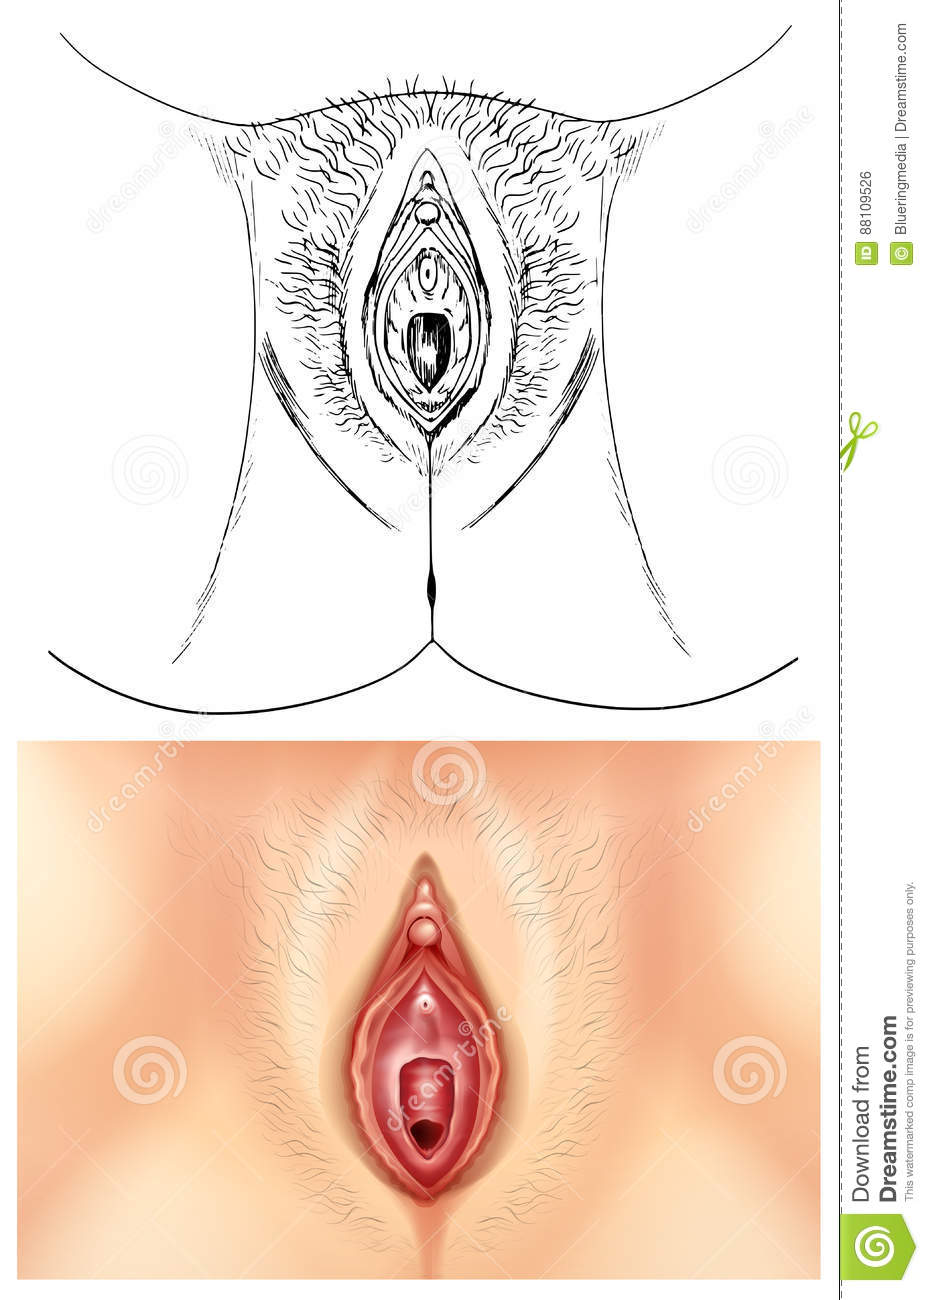 hight resolution of diagram showing female vagina